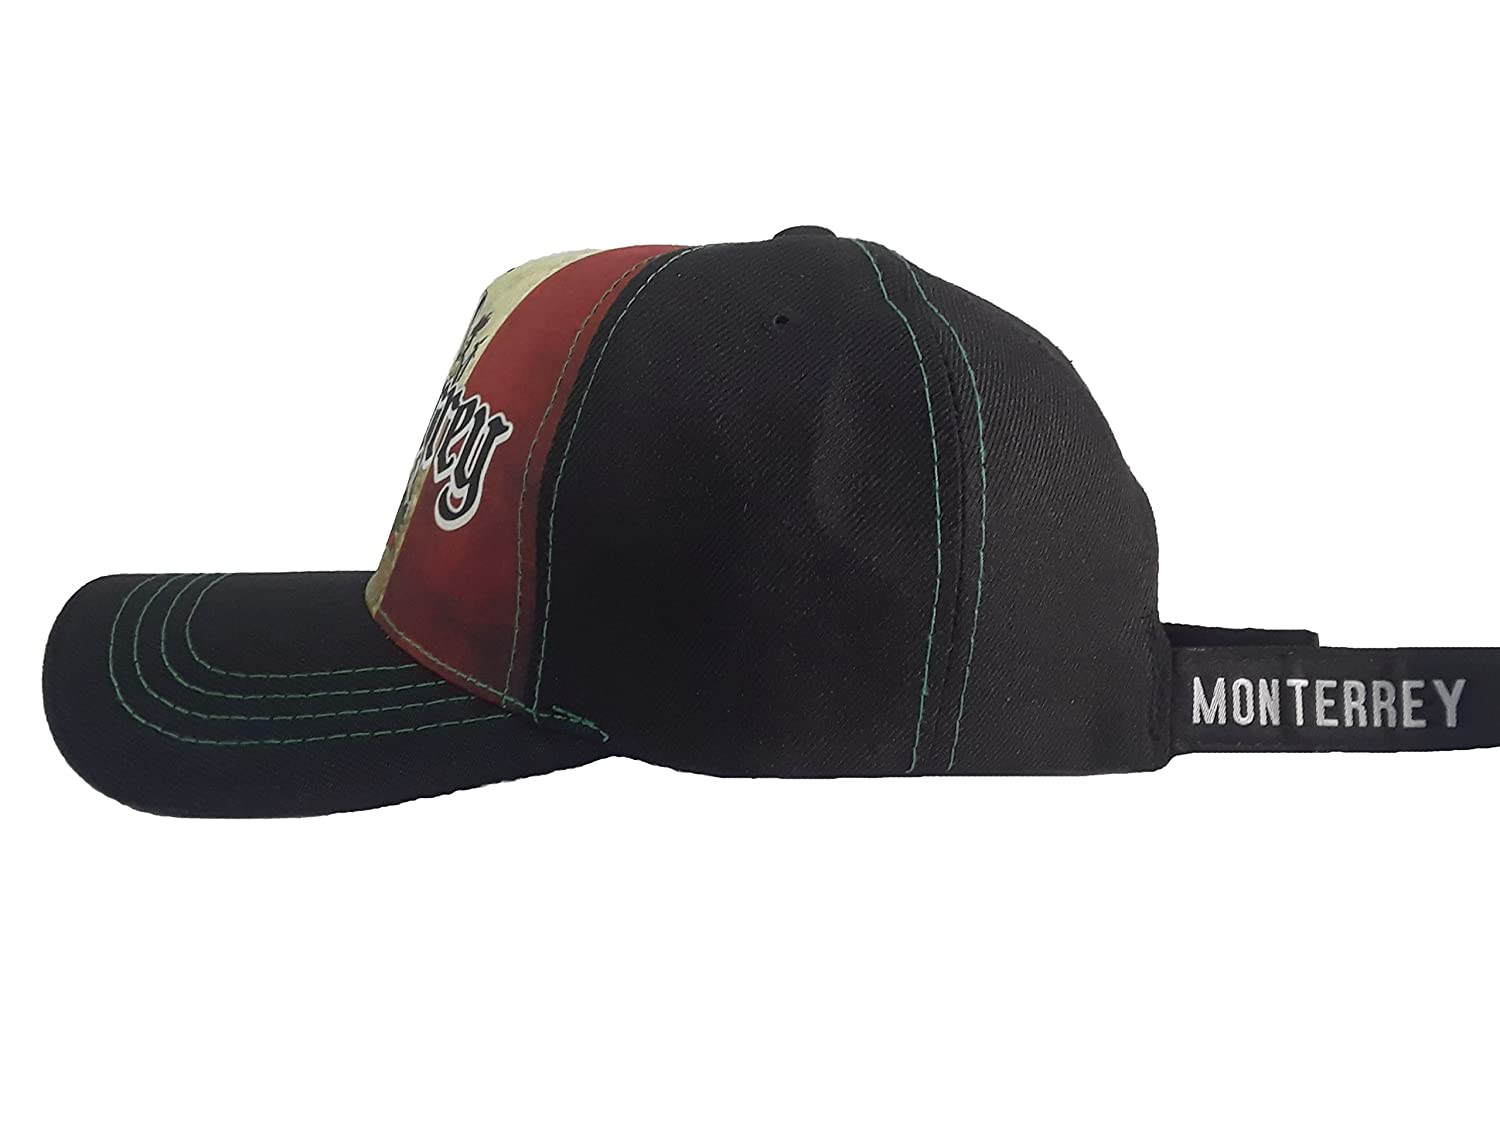 Gorra Charra Monterrey ID 210 GOX2 Mexico/Negro at Amazon Mens Clothing store: